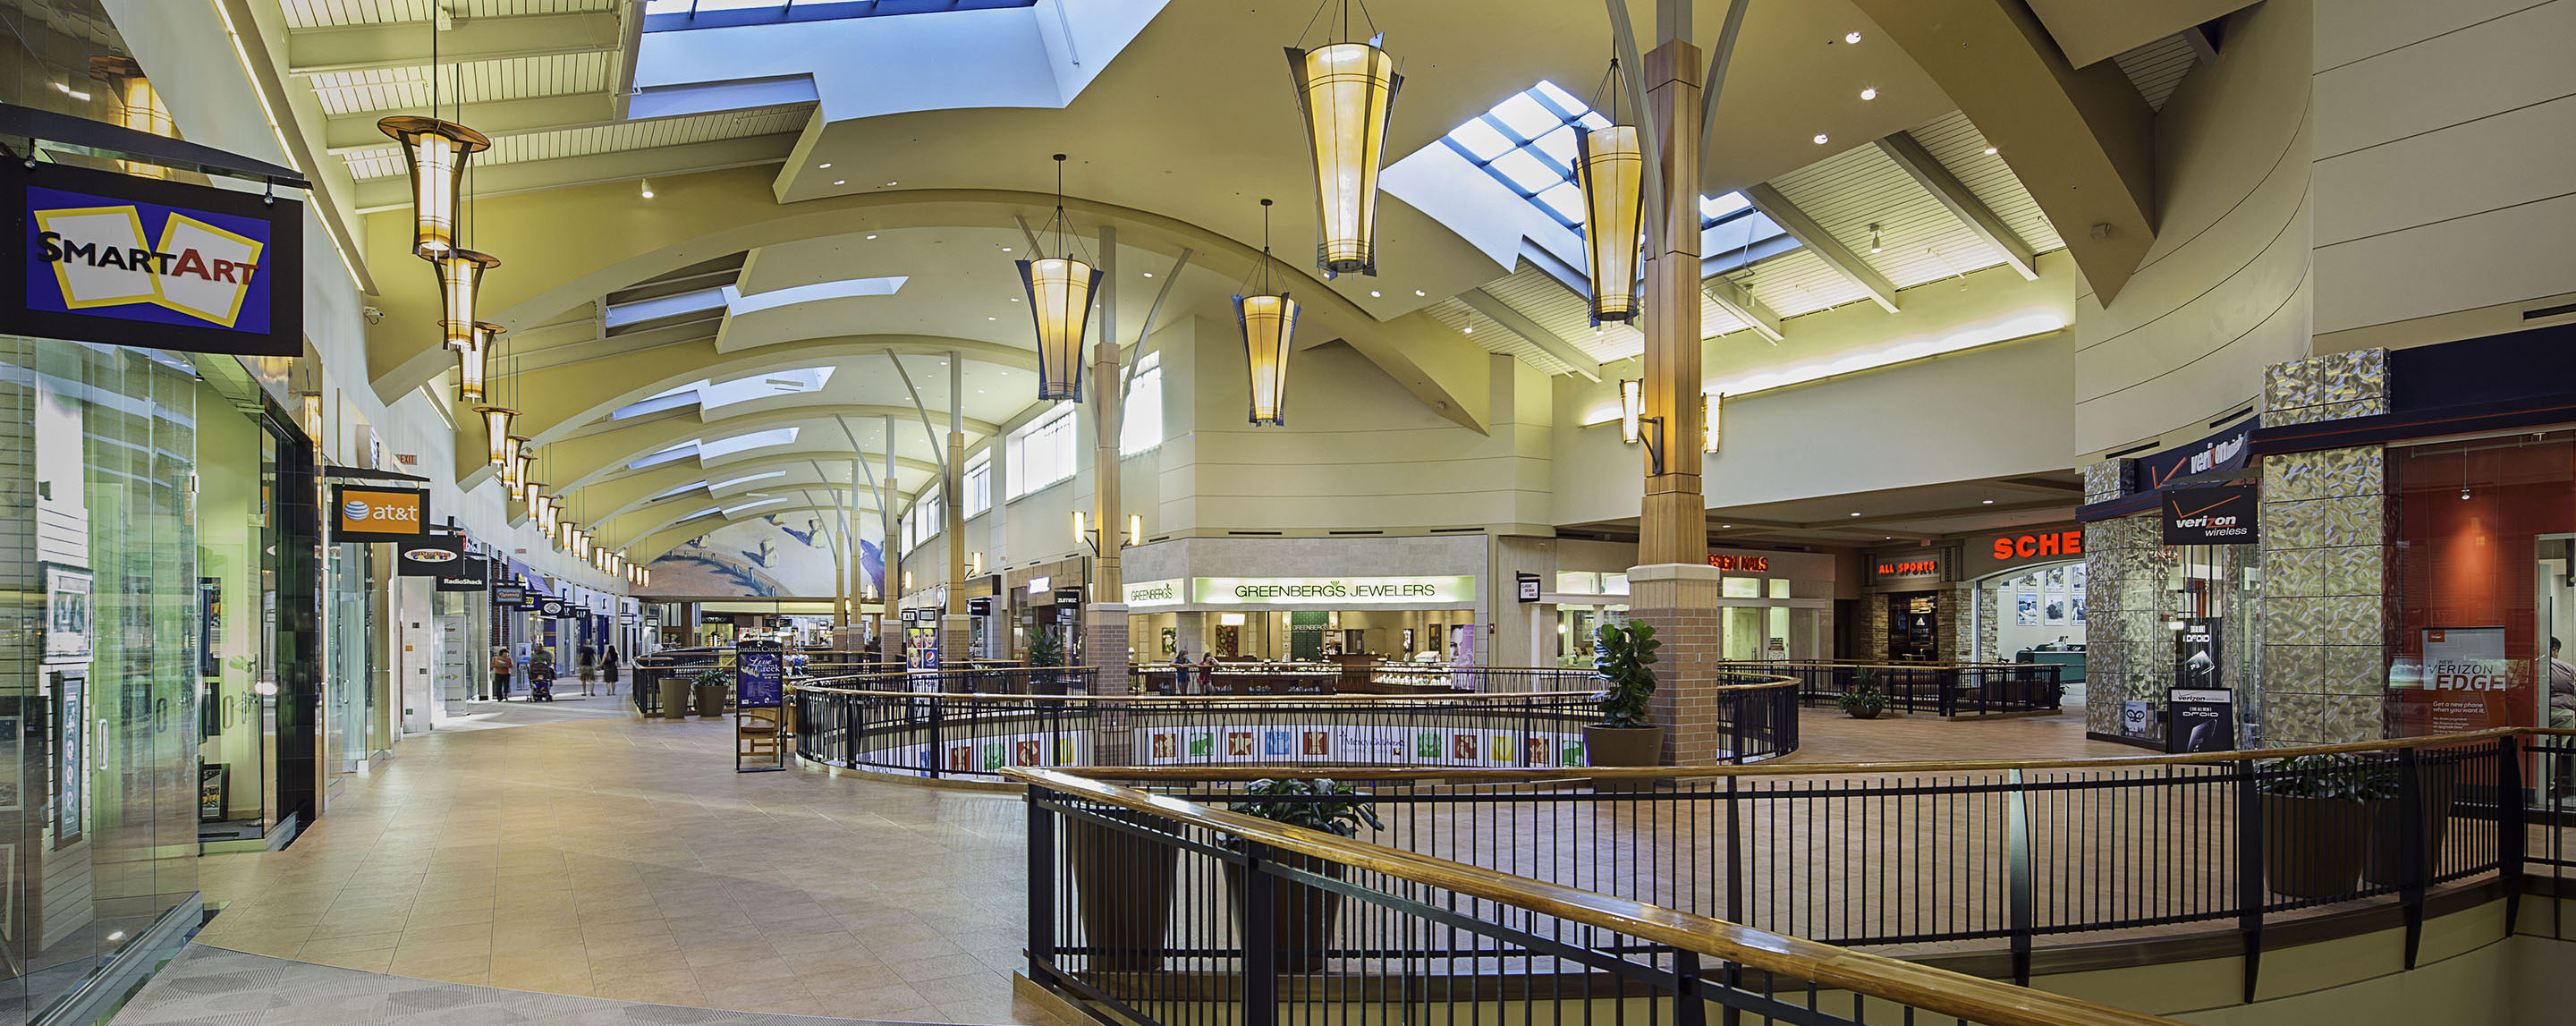 An upper level common area at the Jordan Creek Town Center is decorated with potted plants next to store fronts.